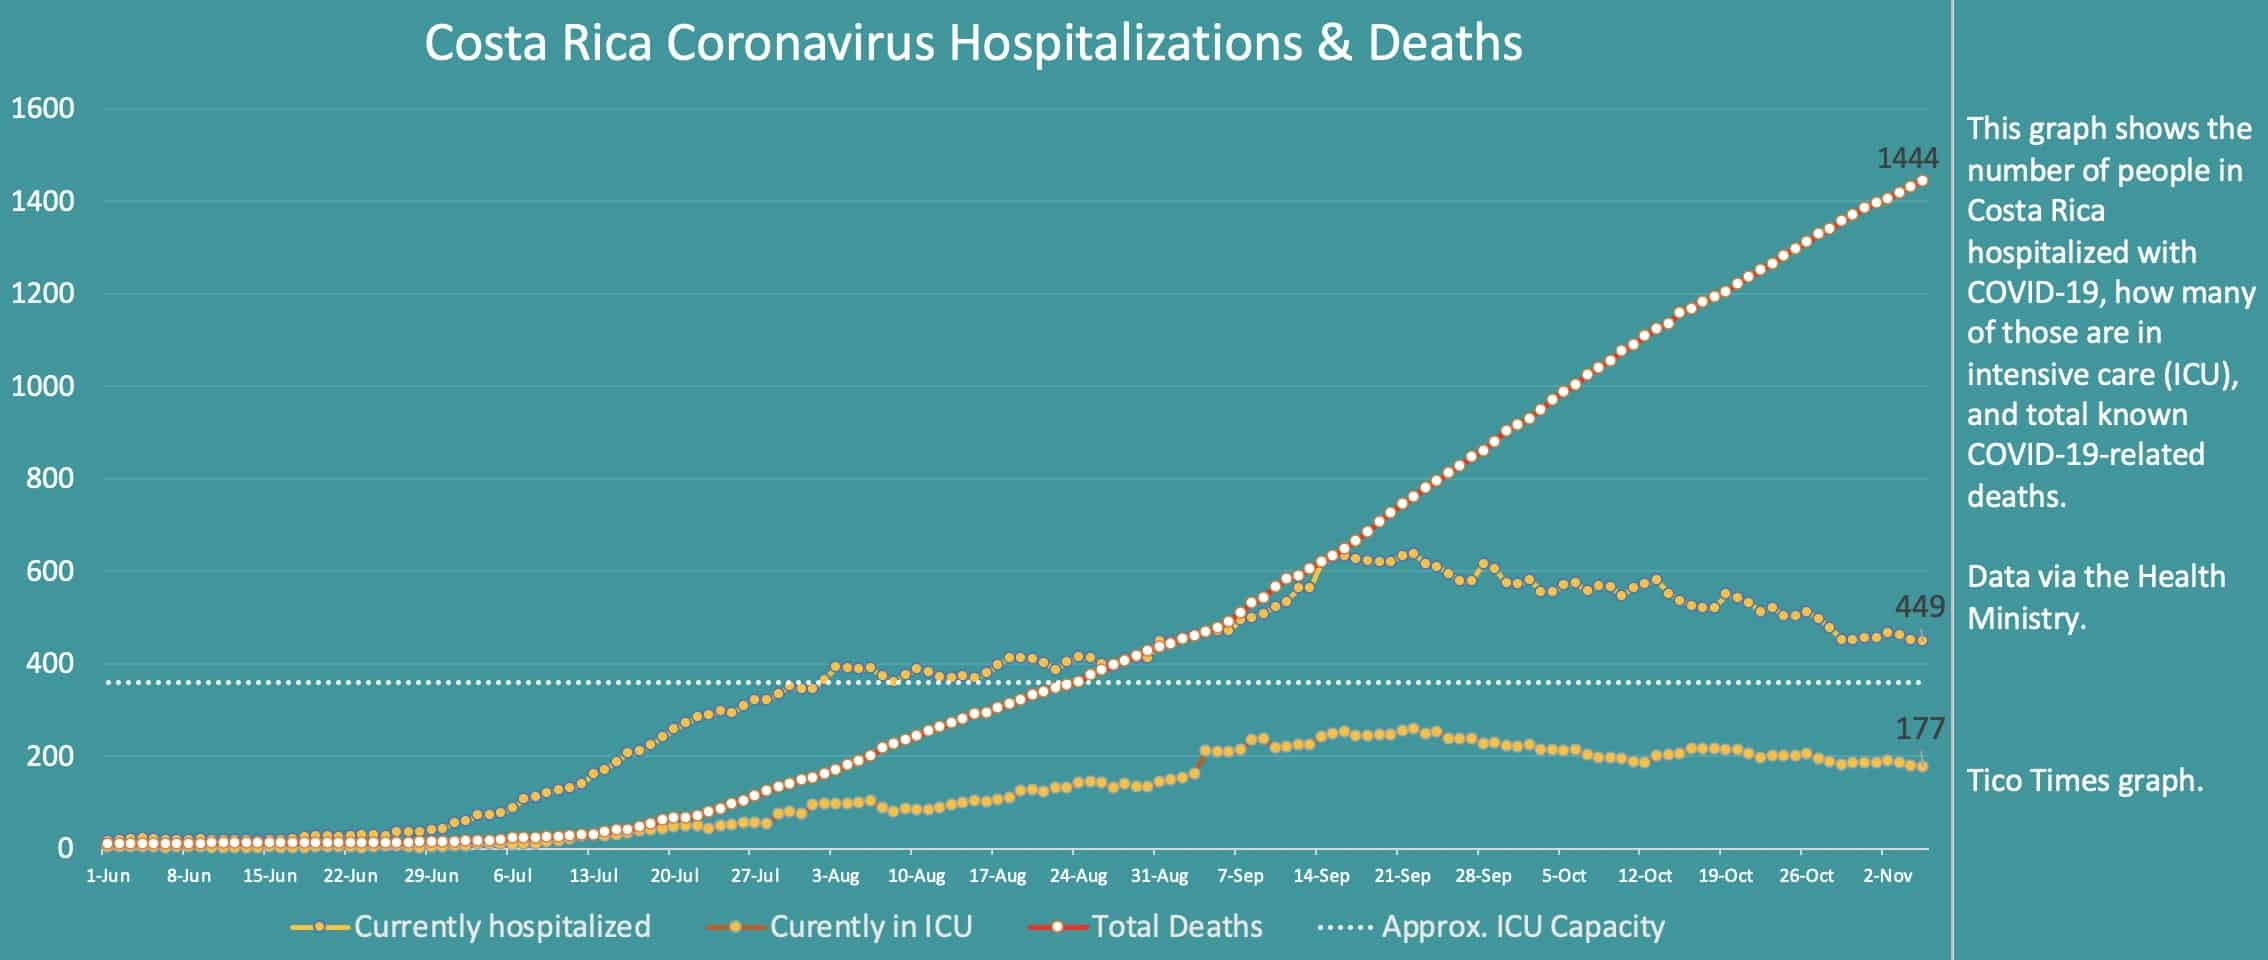 Costa Rica coronavirus hospitalizations and deaths on November 5, 2020